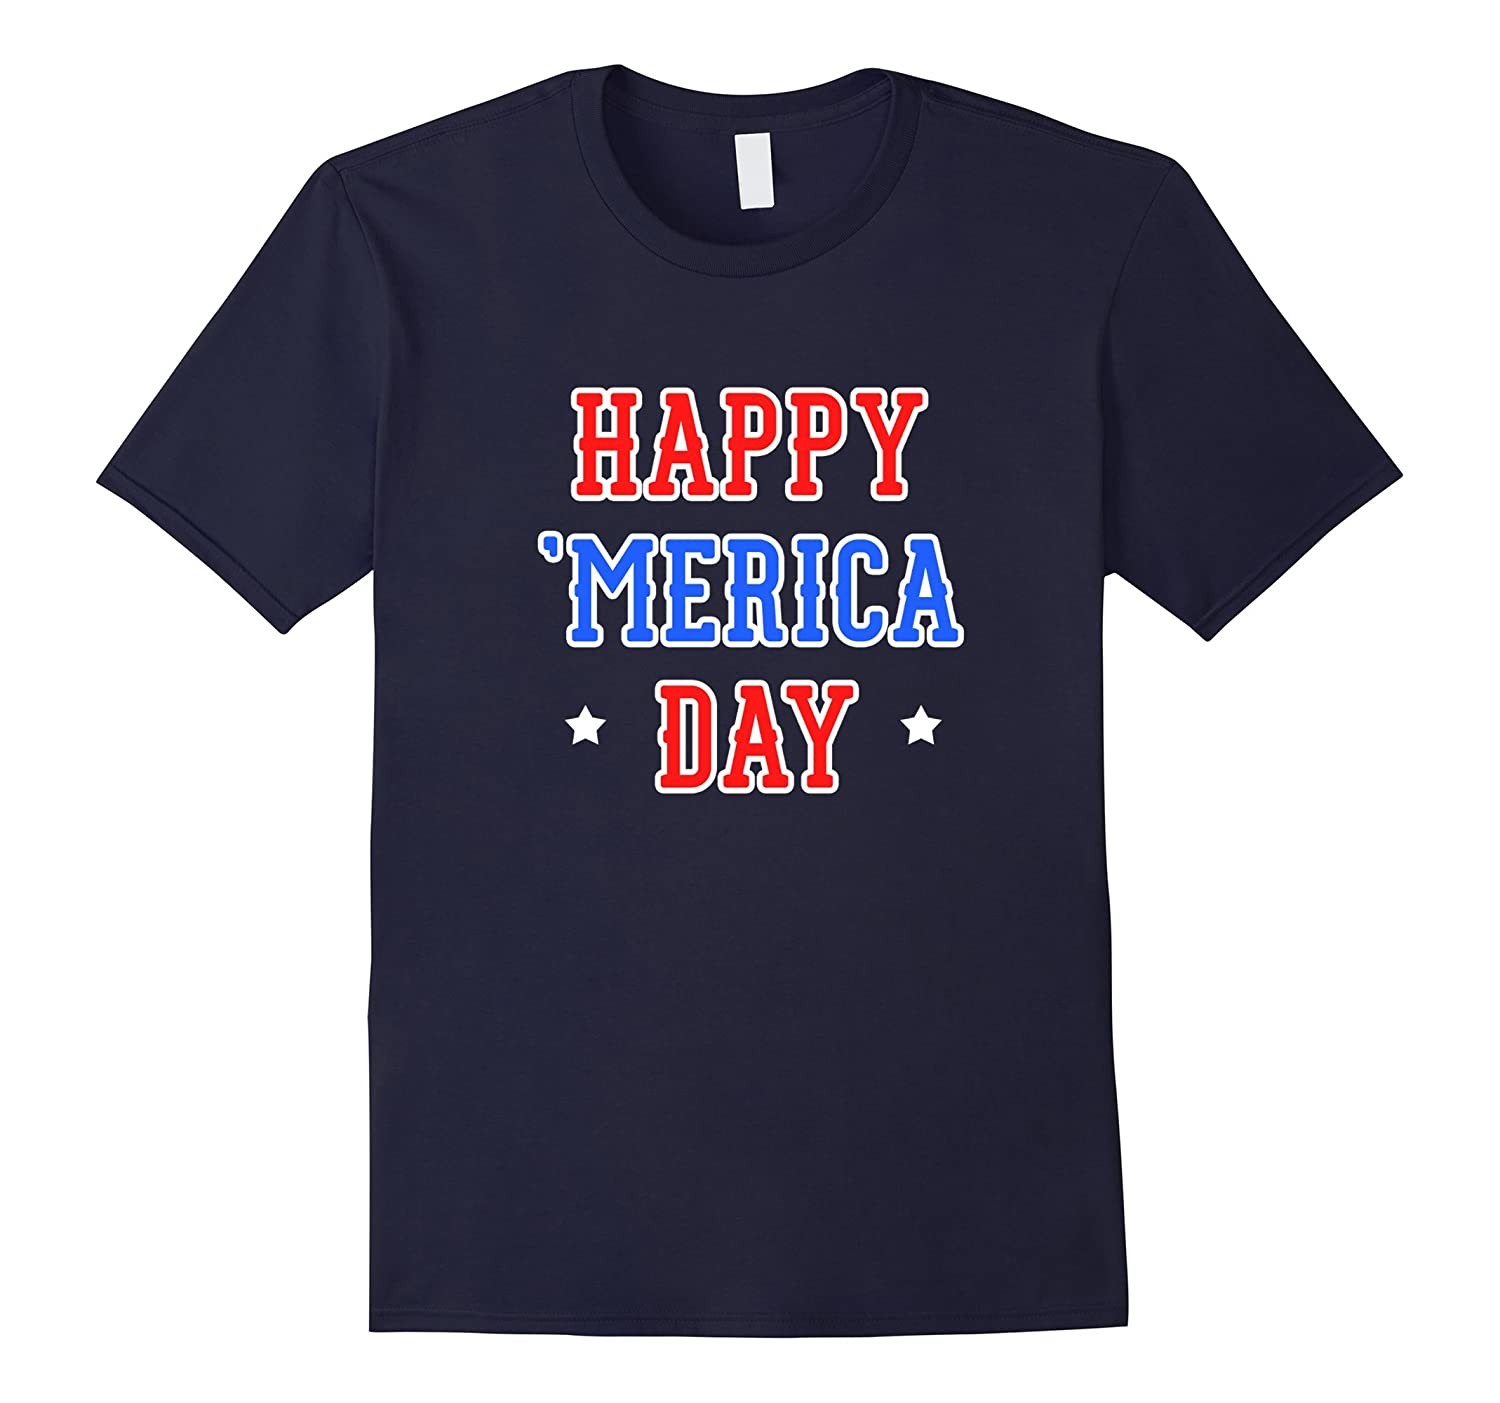 4th of July Clothing for Men Women Funny Merica T-Shirt-PL